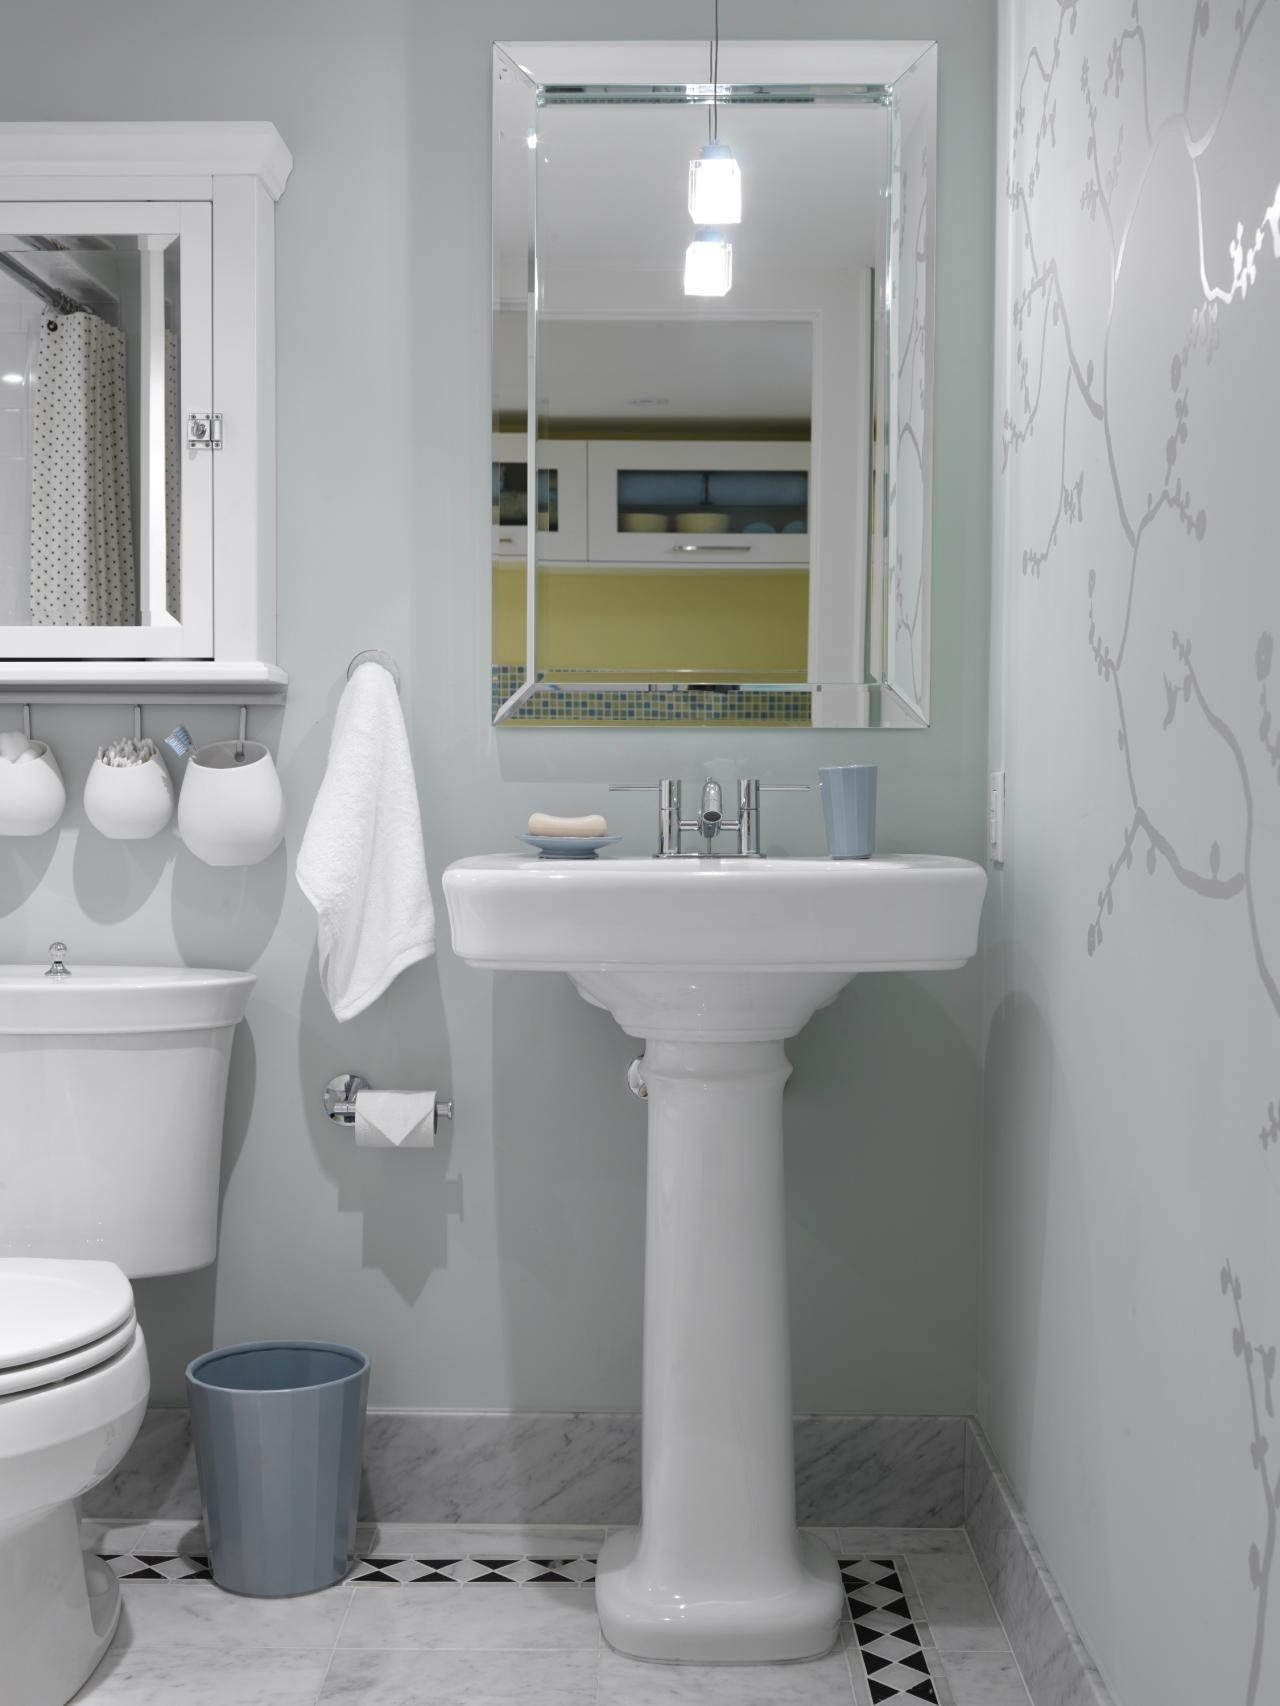 10 Attractive Small Bathroom Decorating Ideas Pictures %name